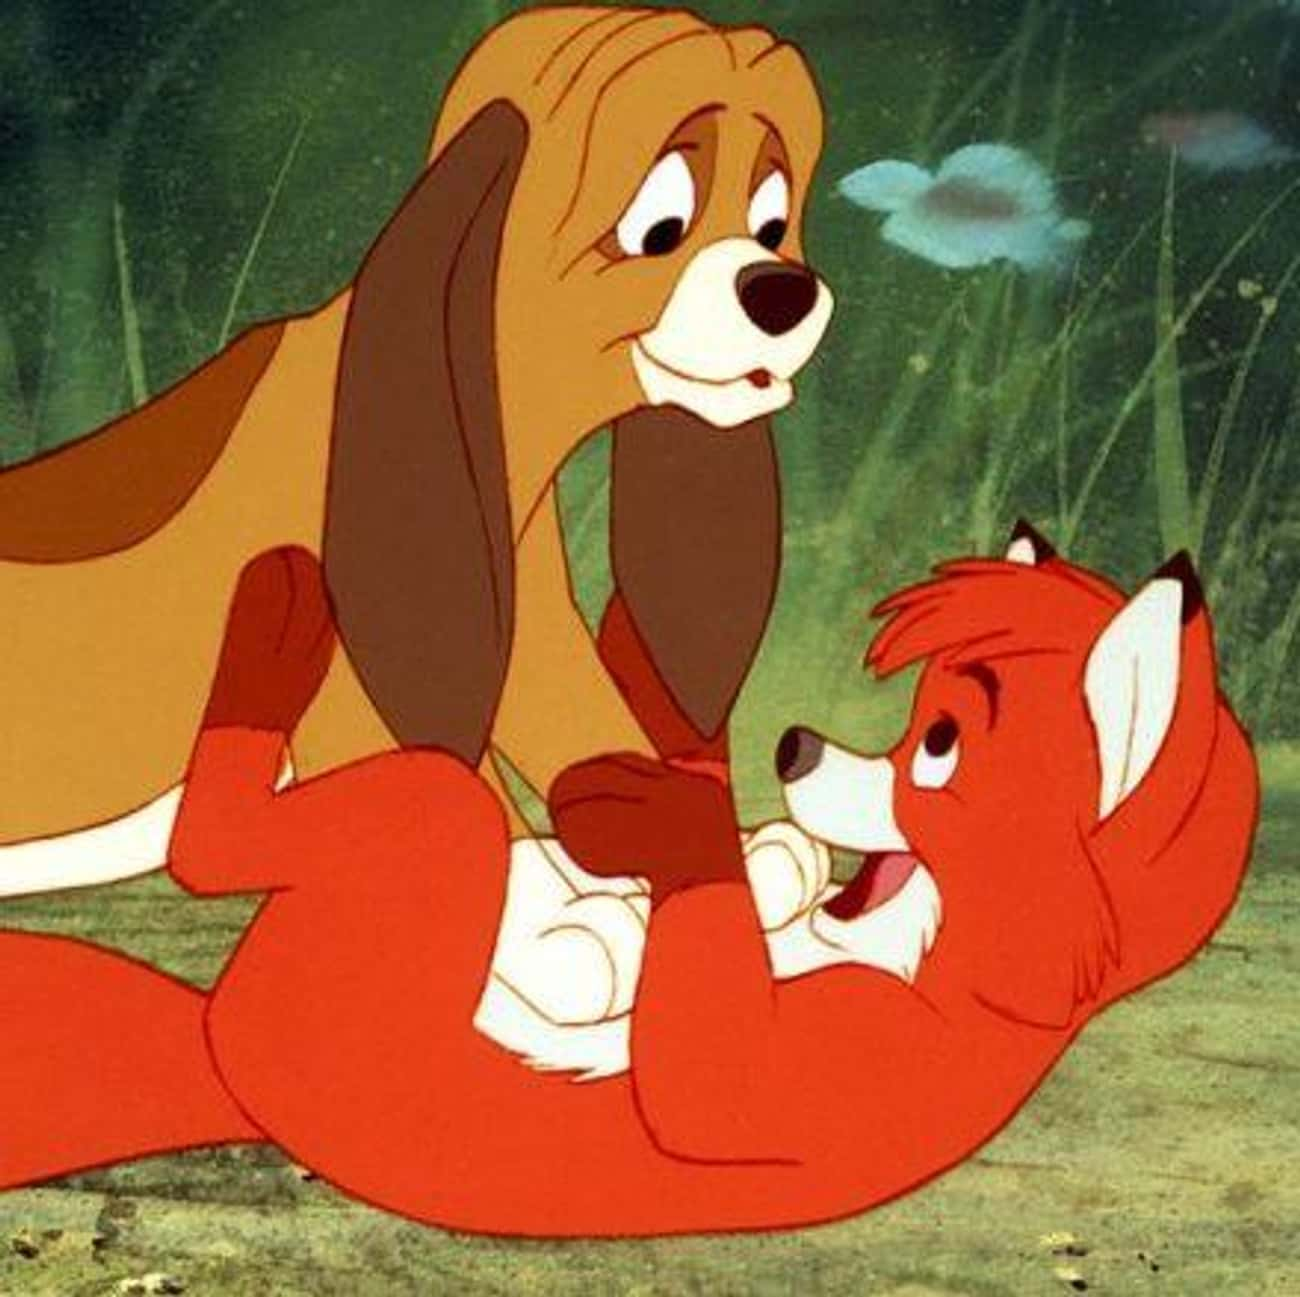 Friends Forever is listed (or ranked) 3 on the list The Best Quotes From The Fox and the Hound